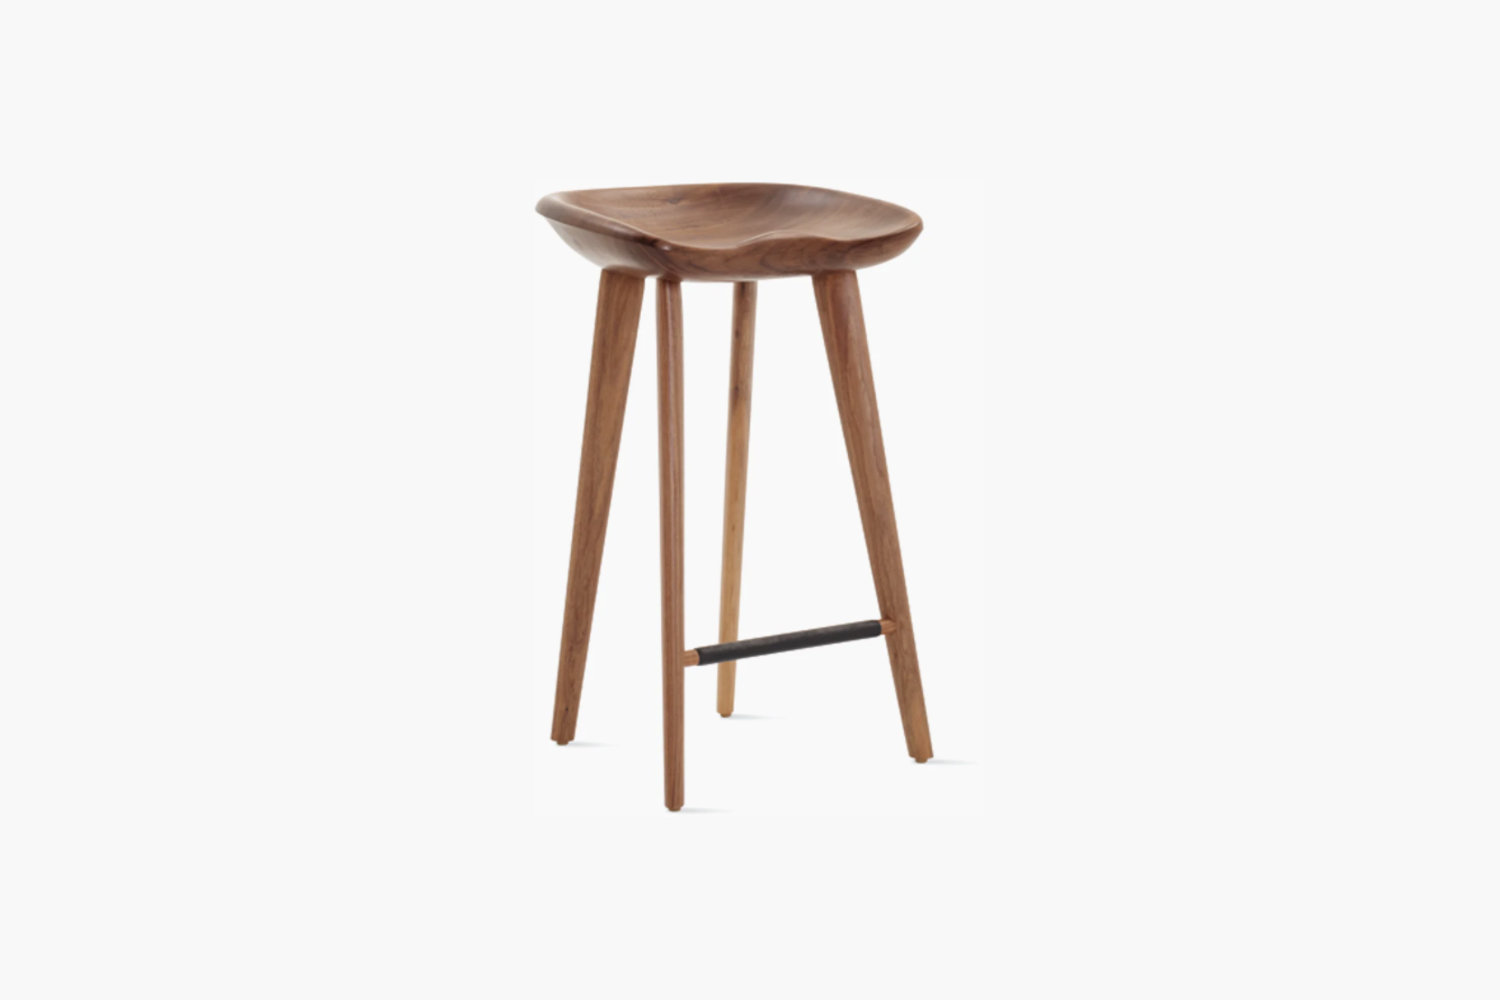 Designed by Craig Bassam, the Tractor Stool in walnut is $class=